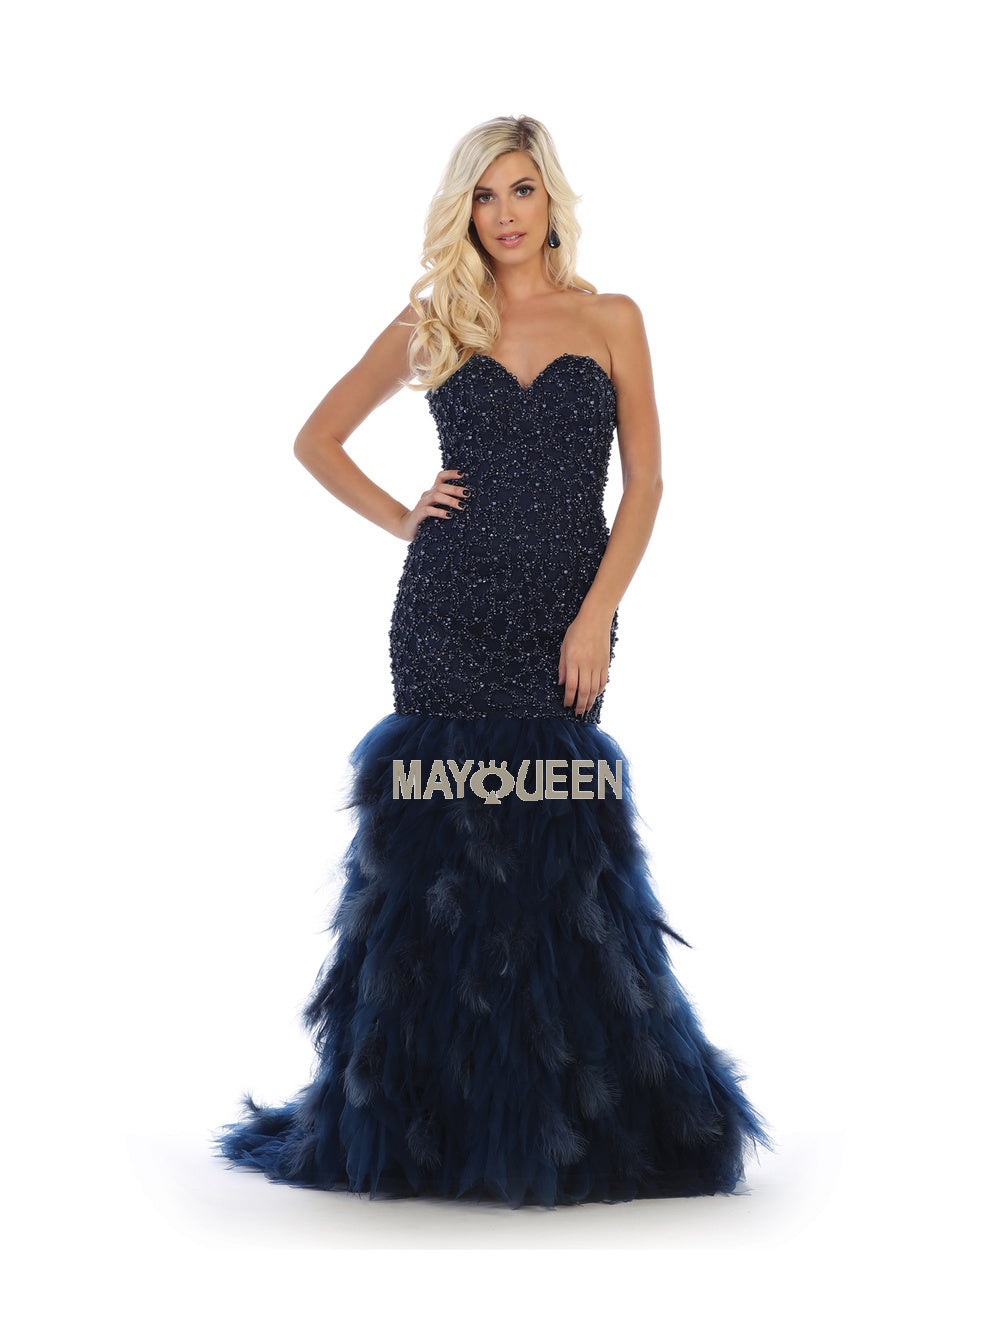 Mayqueen Size Chart E MQ 7668 - Strapless sequins full length mesh mermaid dress - Diggz Prom